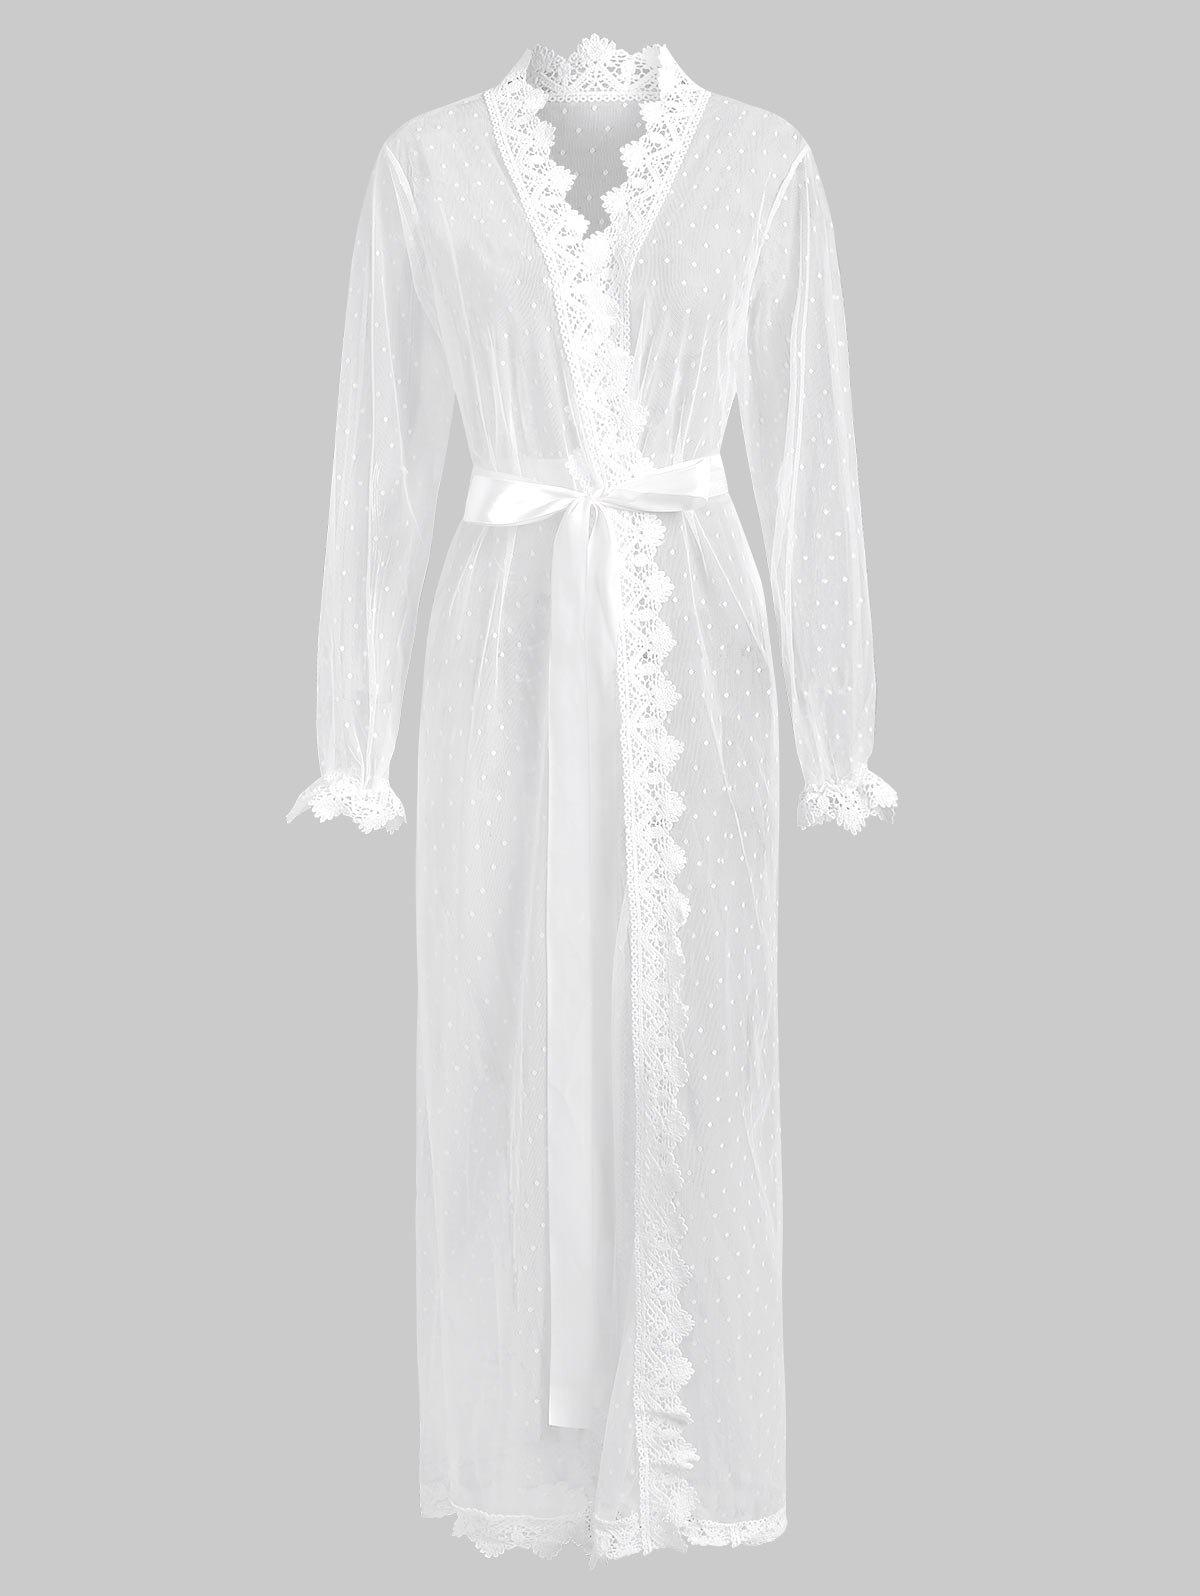 Mesh Sheer Crochet Trim Belted Long Lingerie Robe - MILK WHITE L